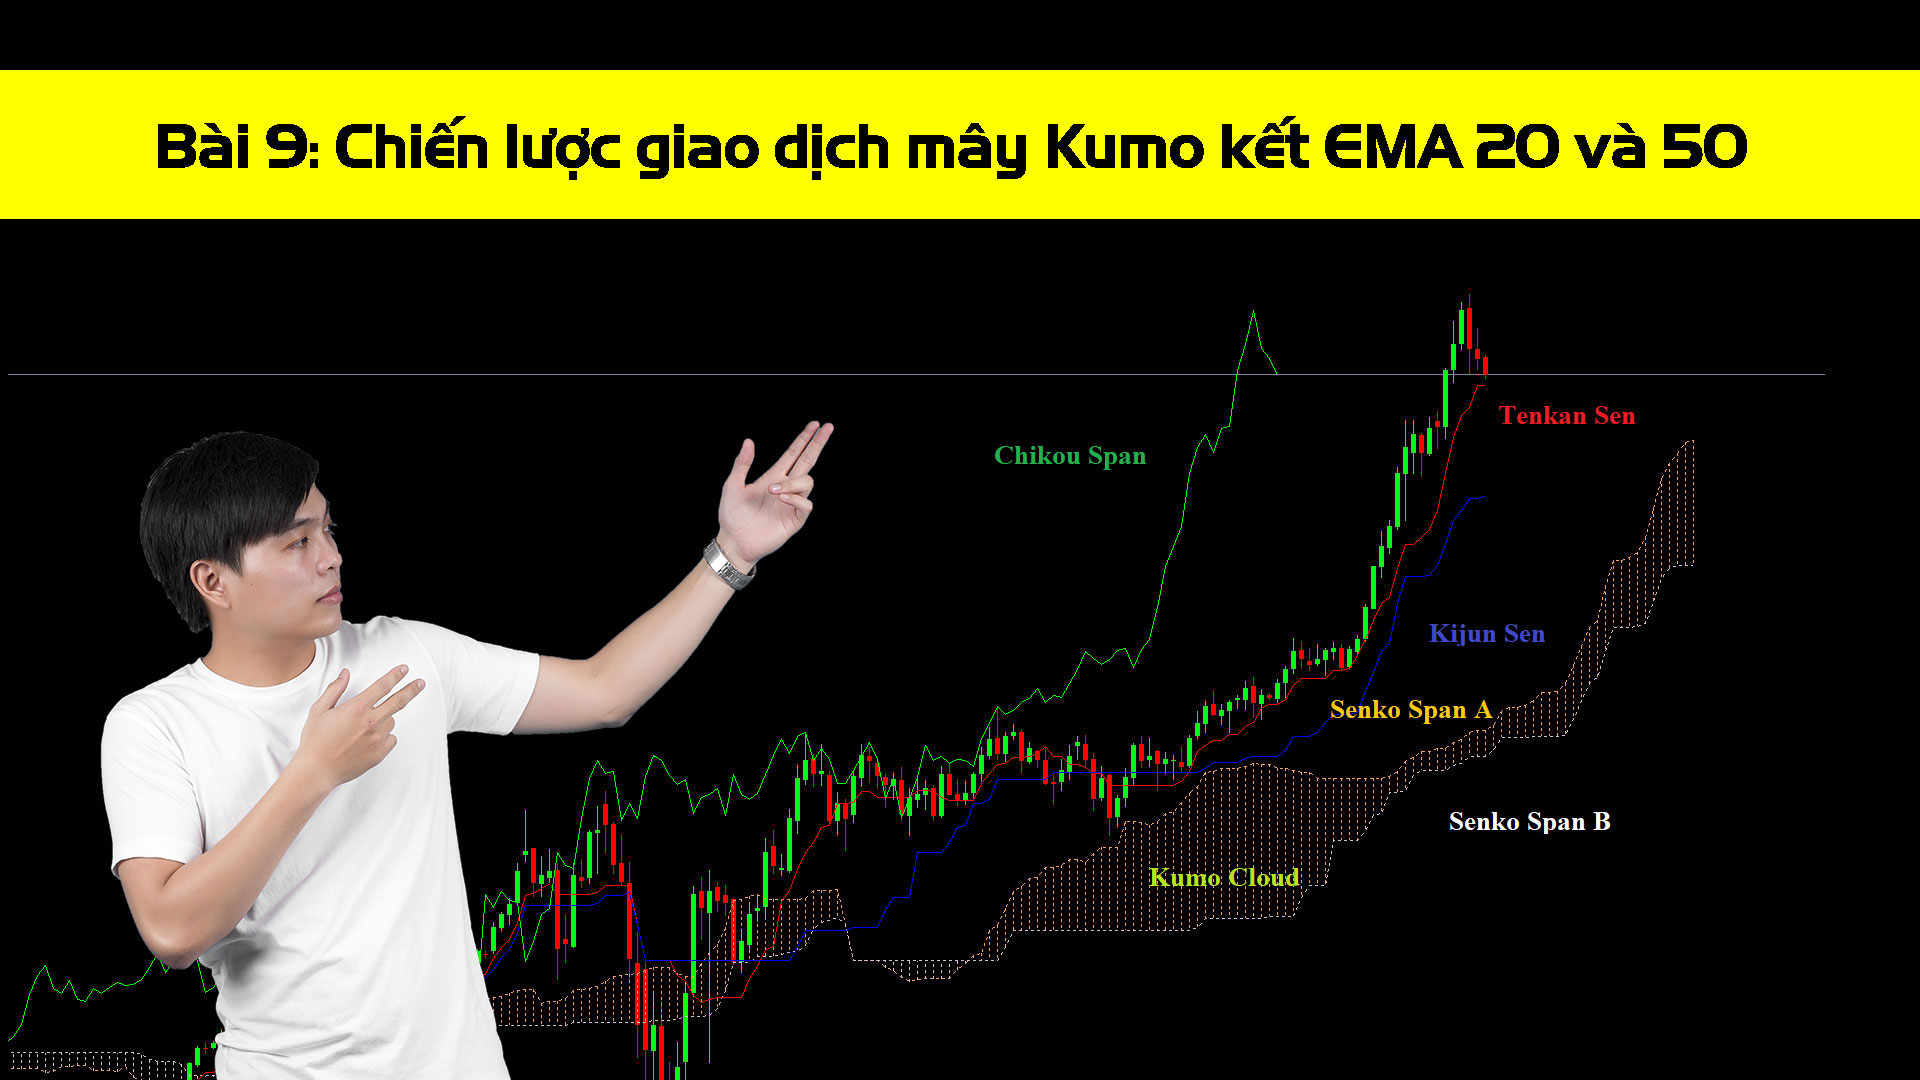 Chien-luoc-giao-dich-may-Kumo,-EMA-20,-EMA-50